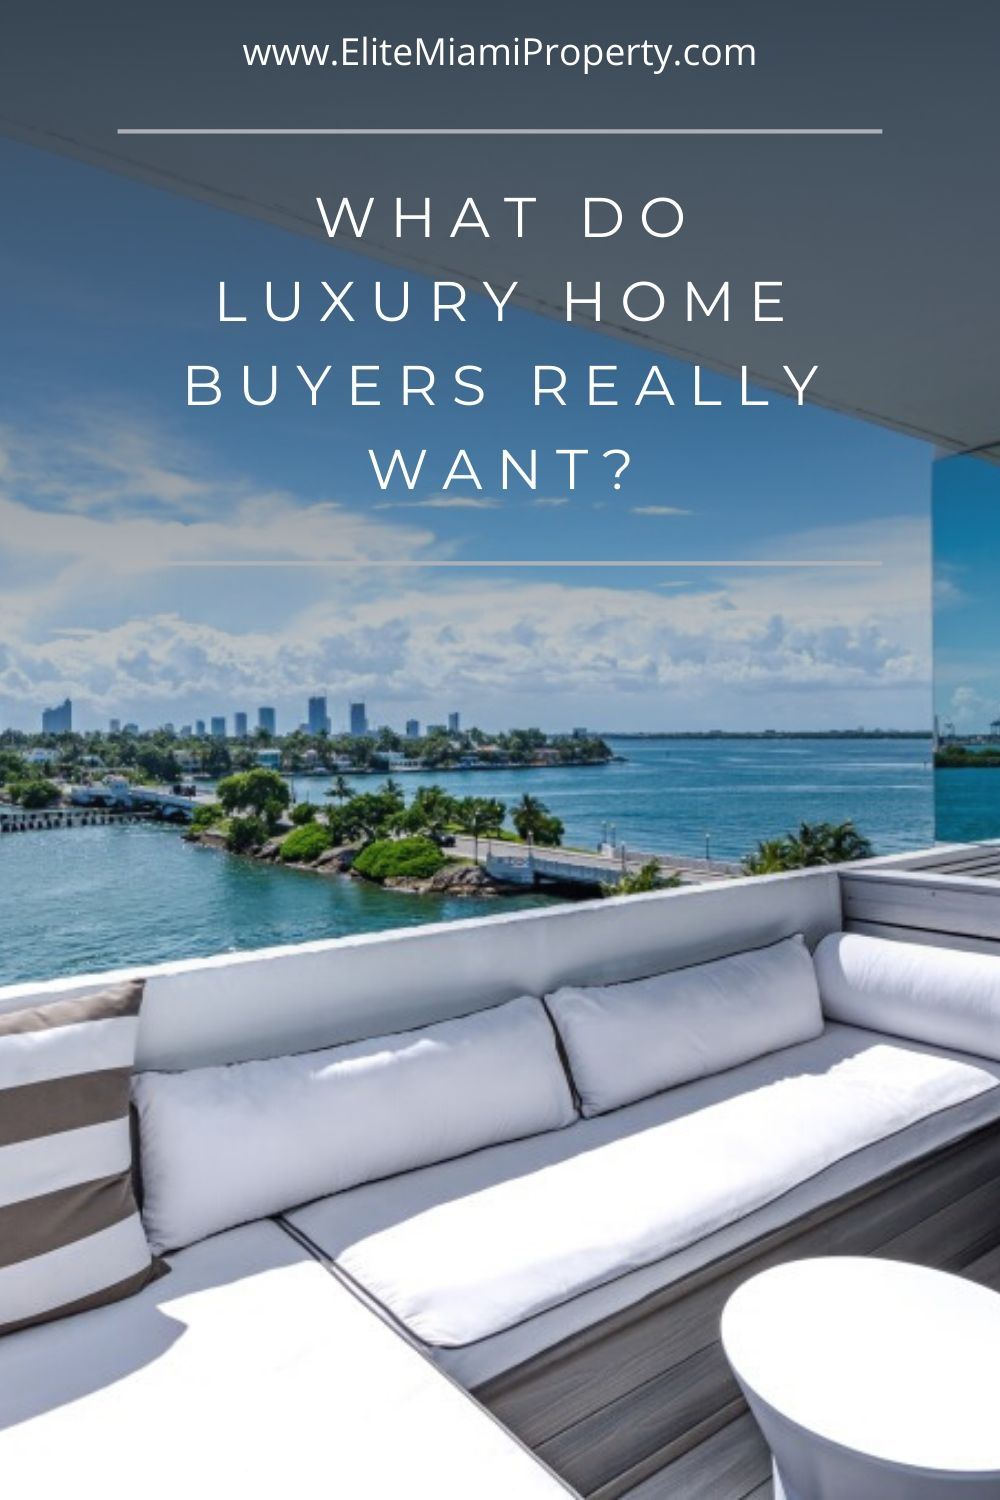 What Do Luxury Home Buyers Really Want?